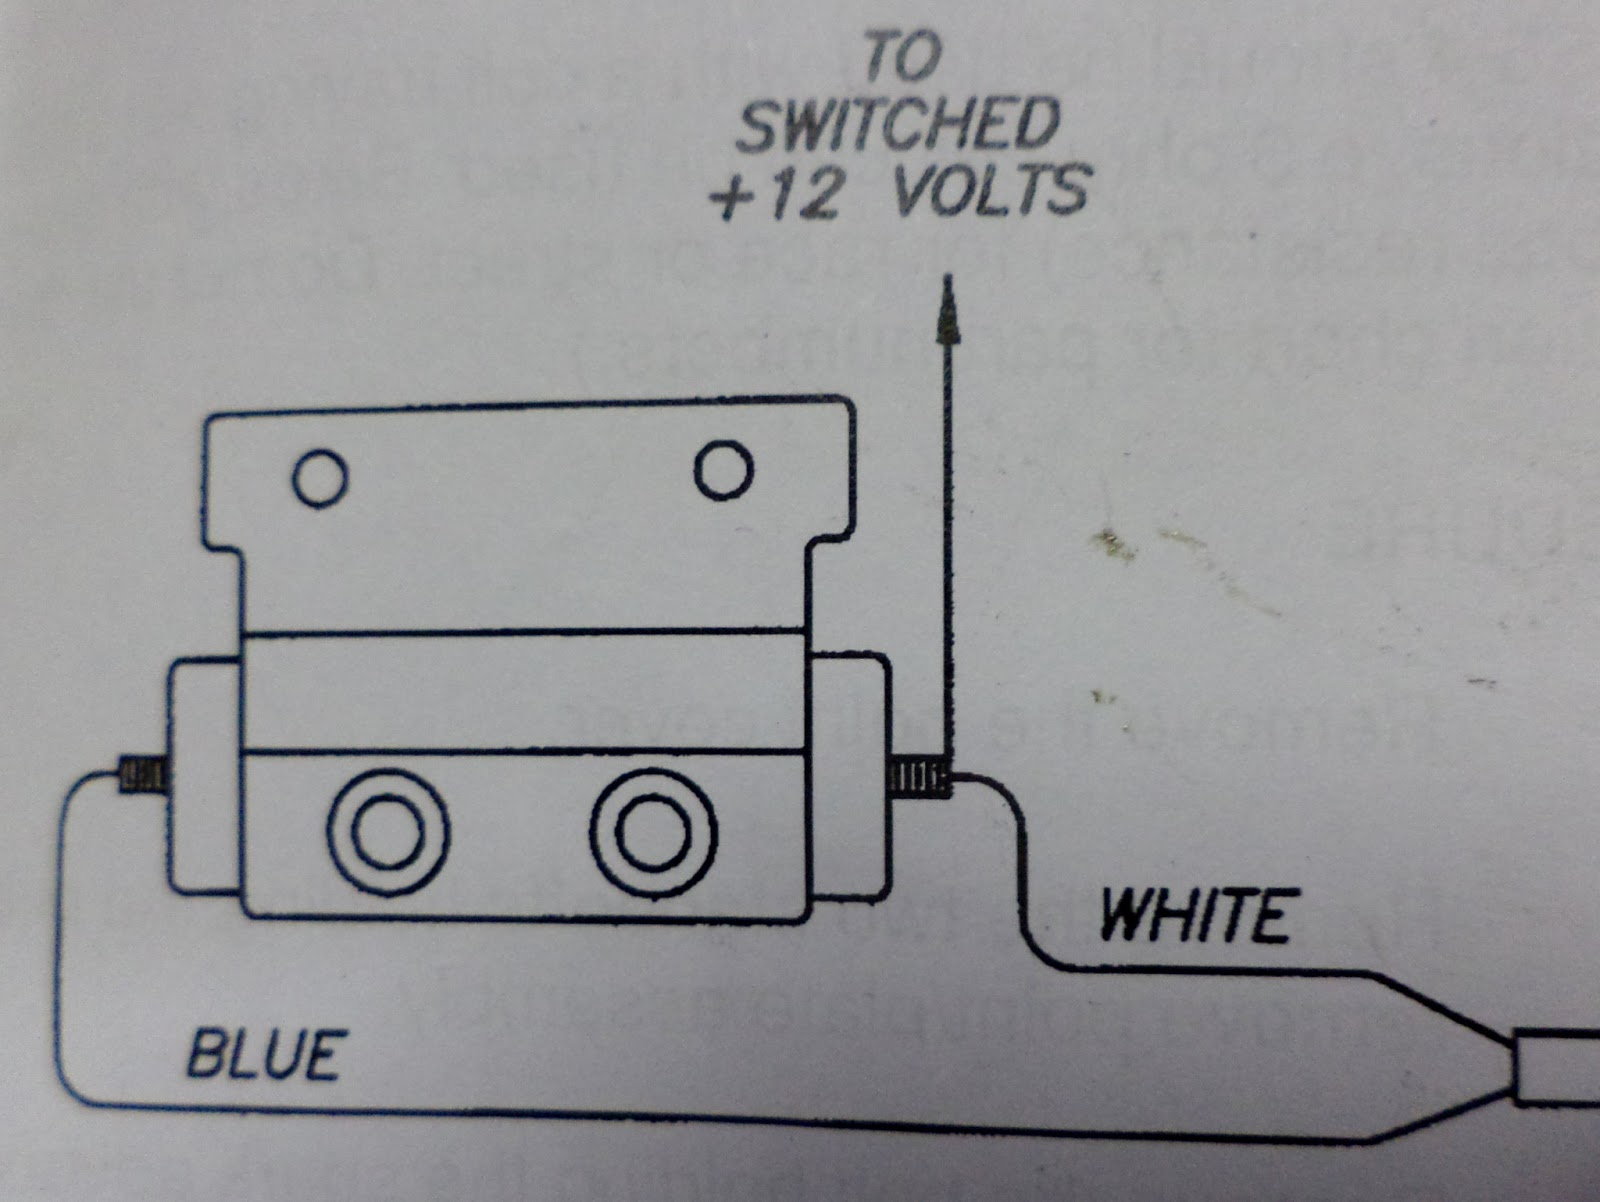 Ignition Coil Wiring Diagram Harley Davidson Wiring Diagram Harley